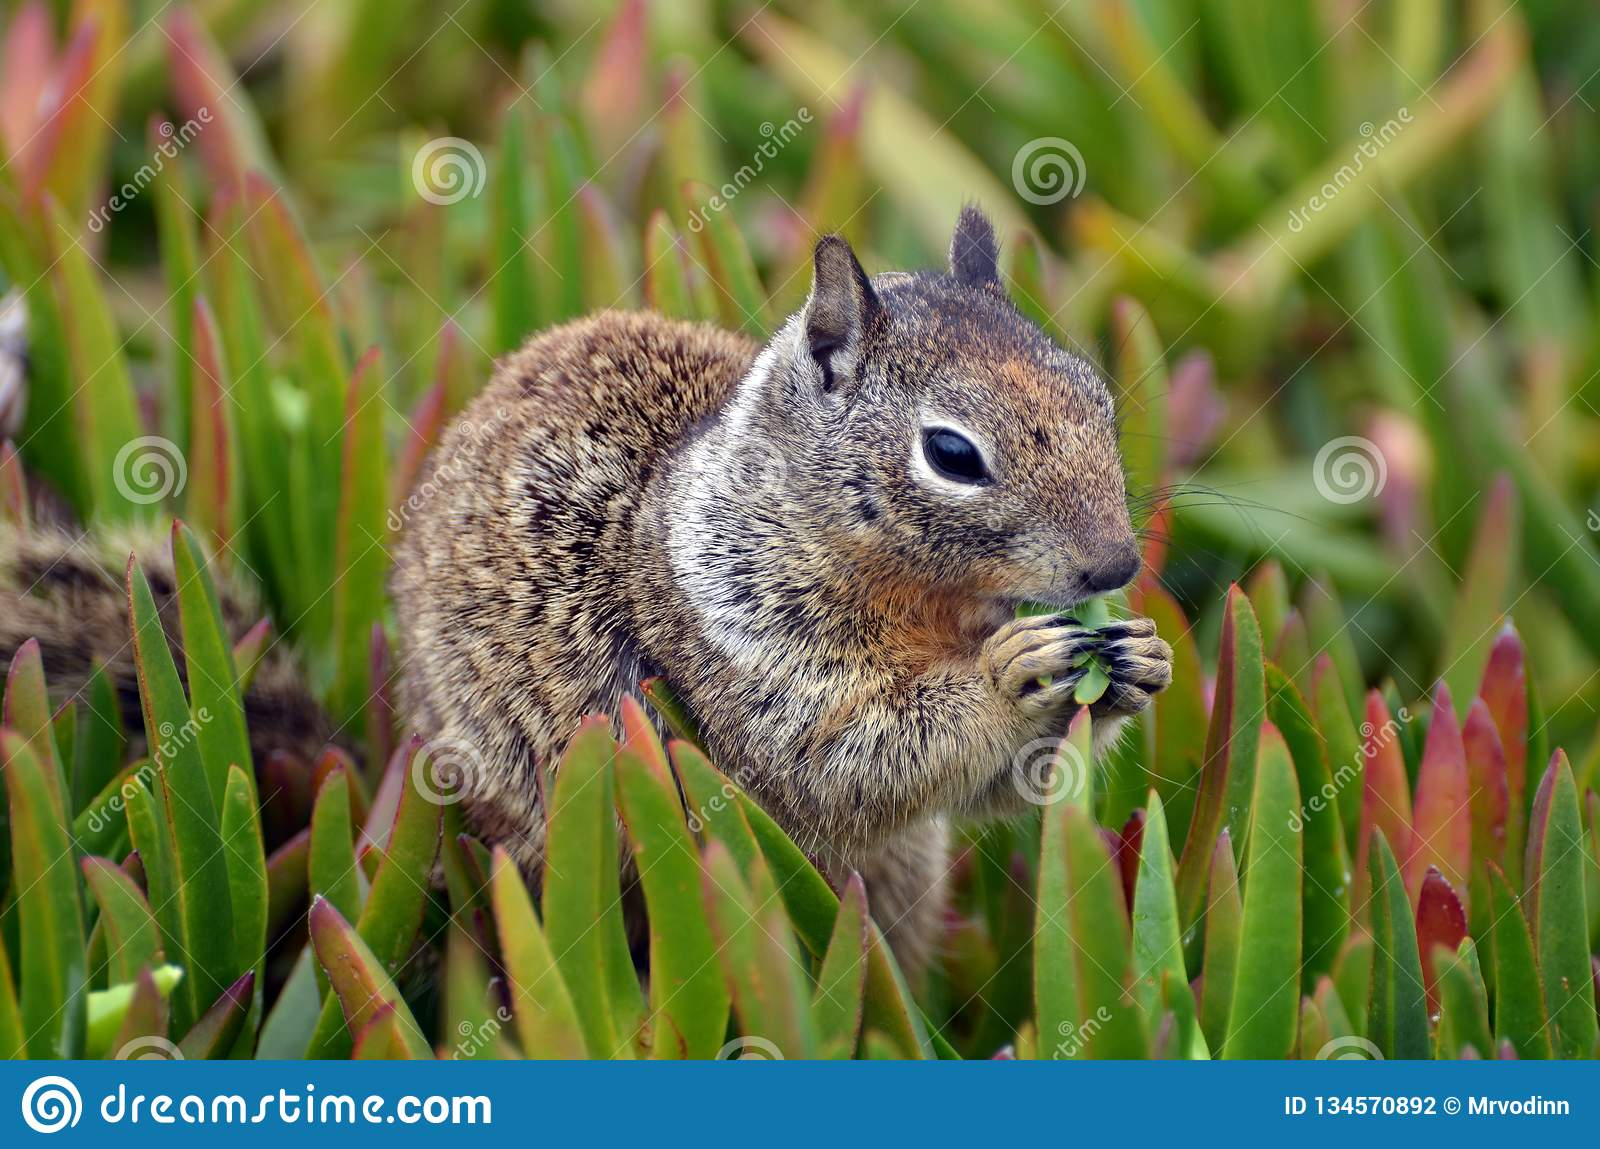 A closeup fluffy animal with varied fur named Spermophilus beecheyi is eating a juicy tuft of grass.